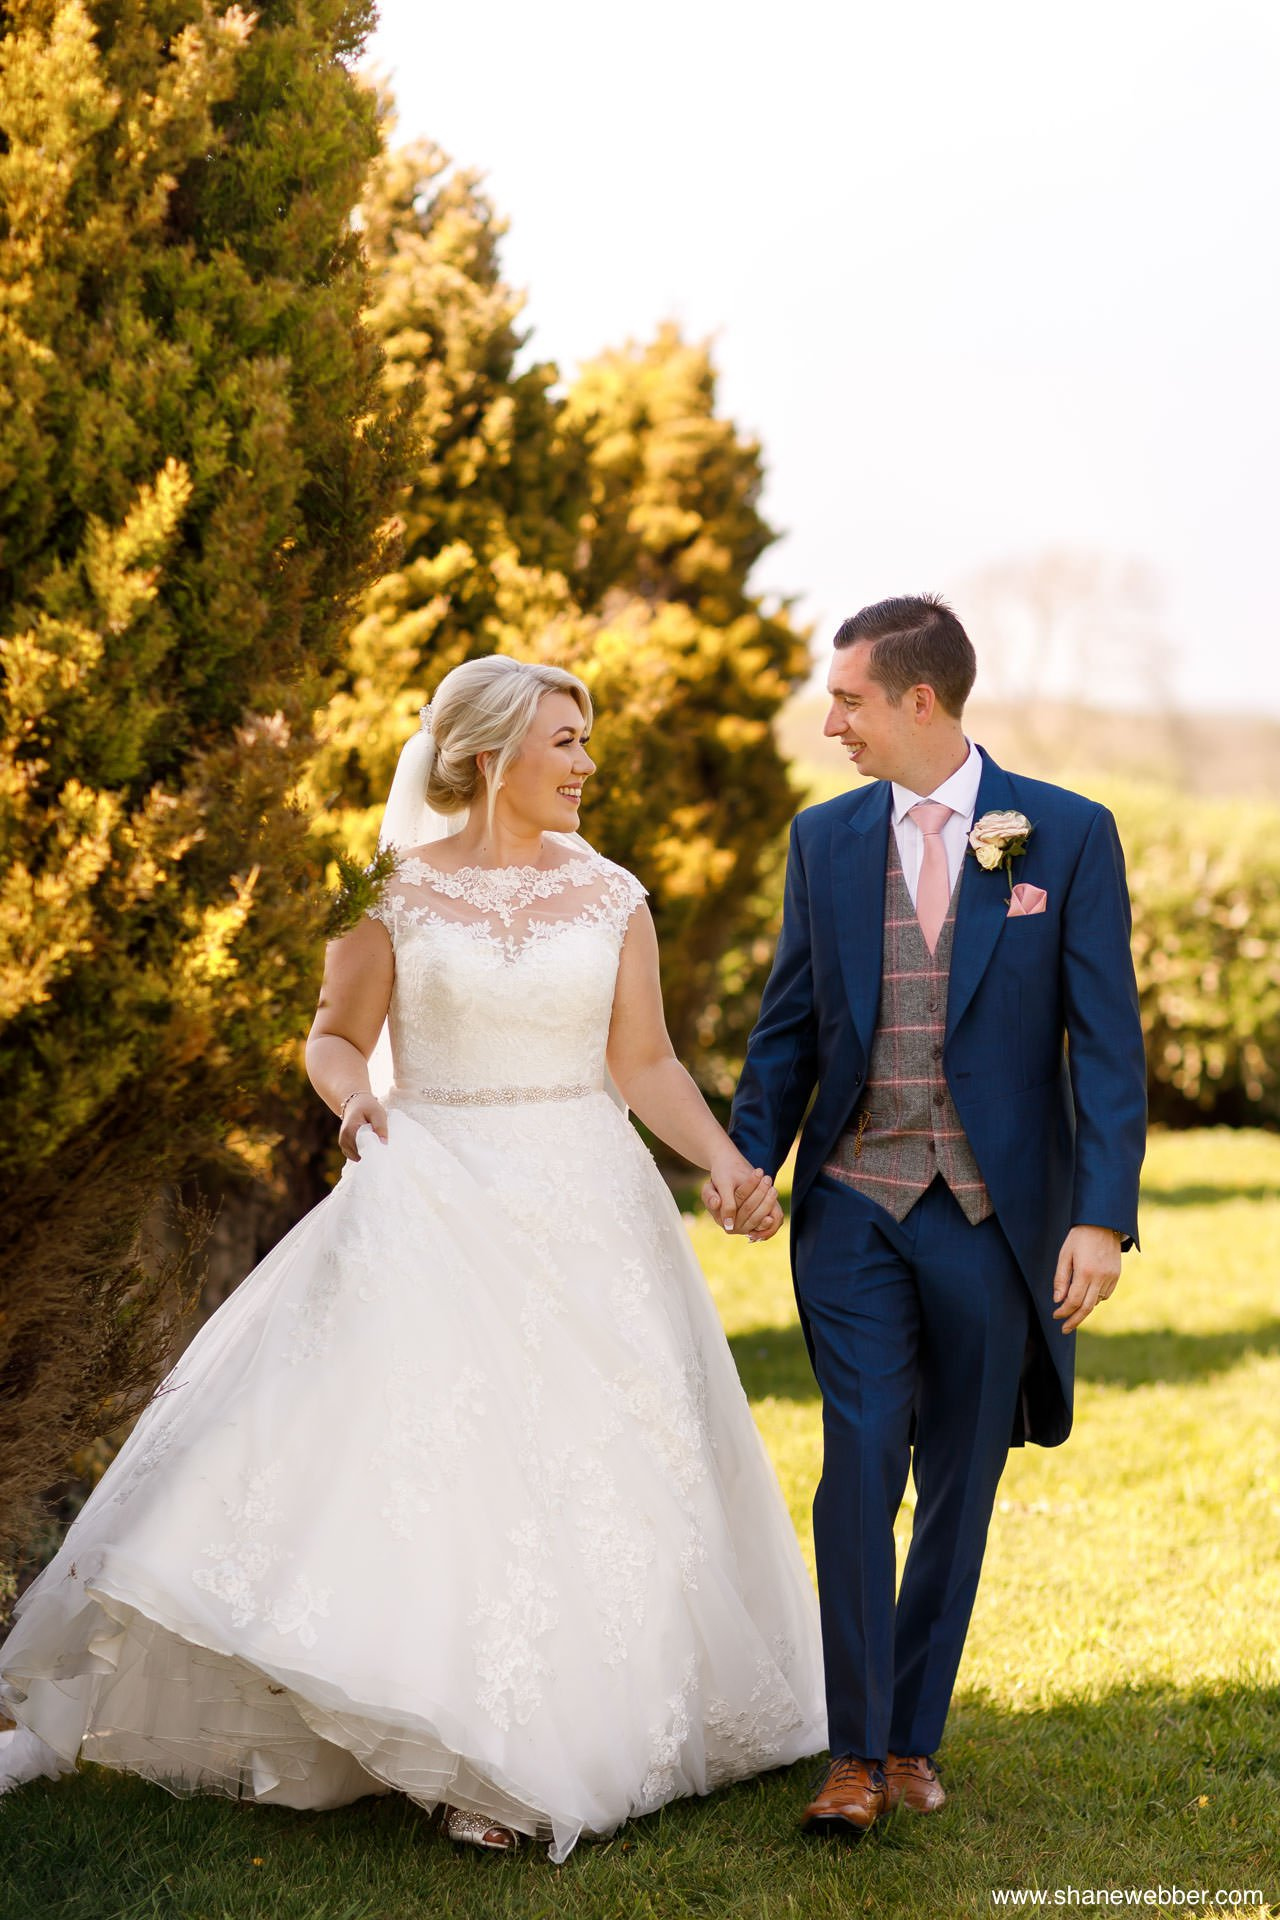 Couples wedding portraits in the Beeston Manor gardens